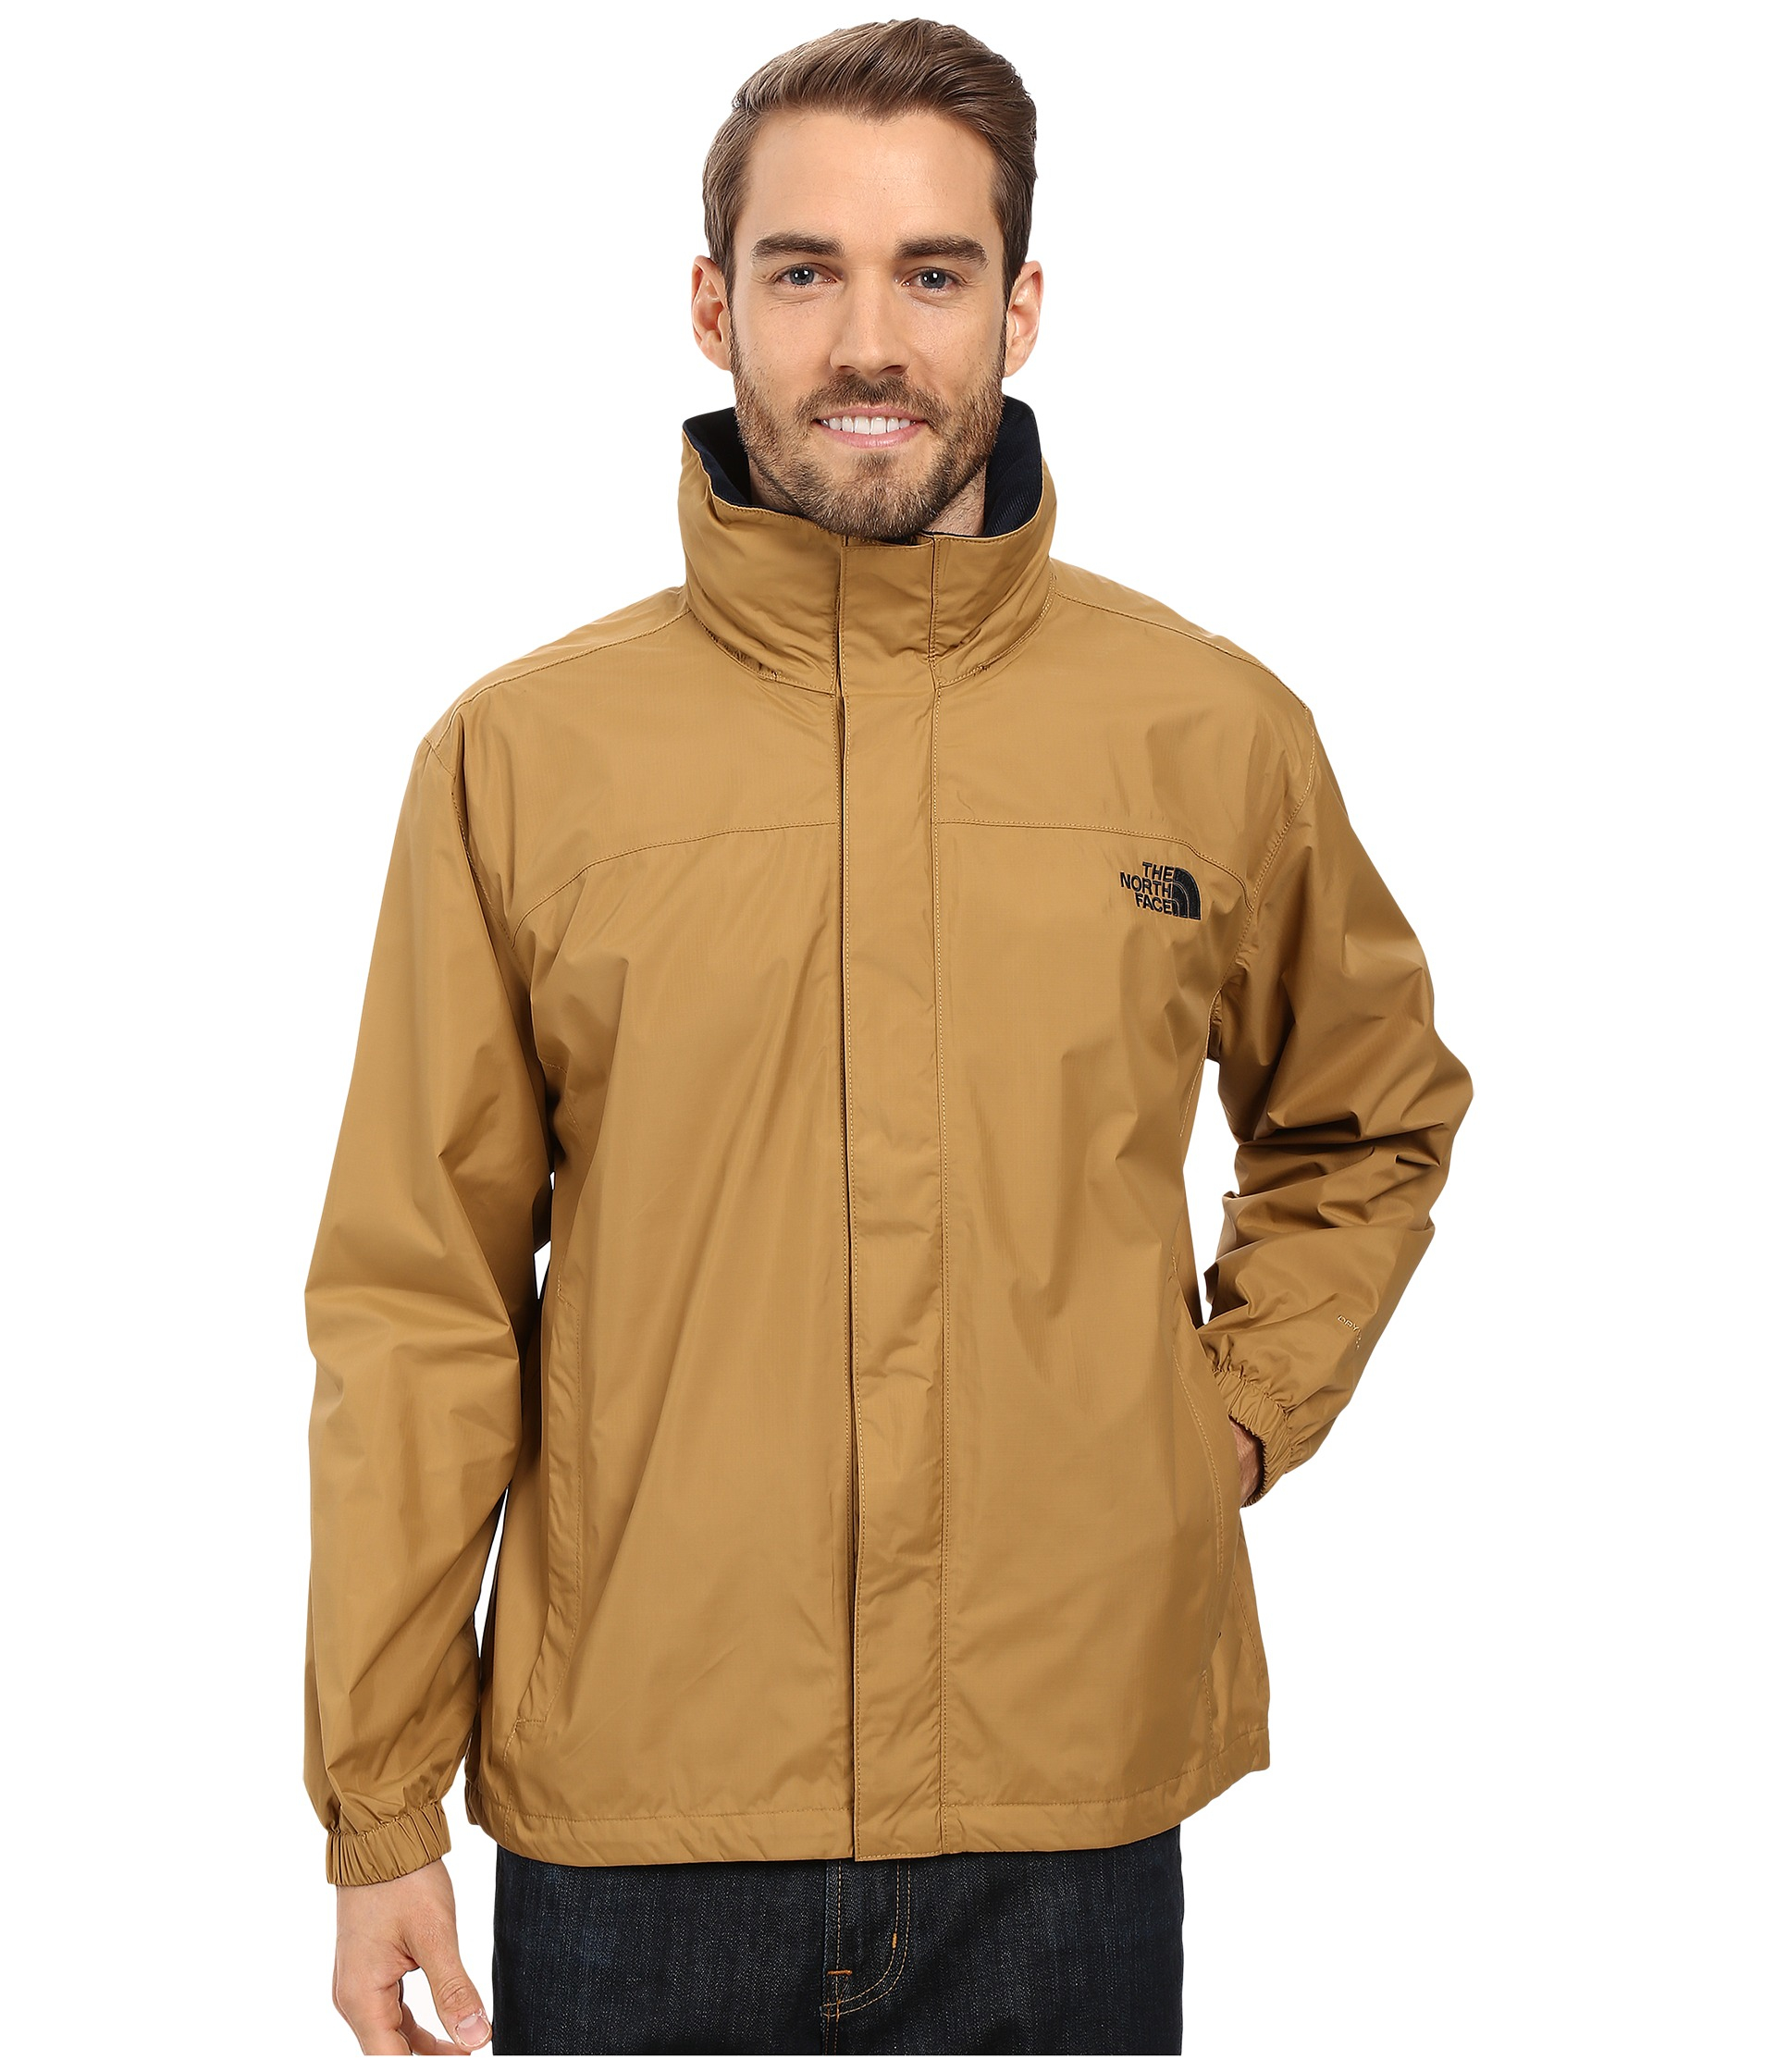 8464050e8a8f ... uk lyst the north face resolve jacket in brown for men c978f 2f55e